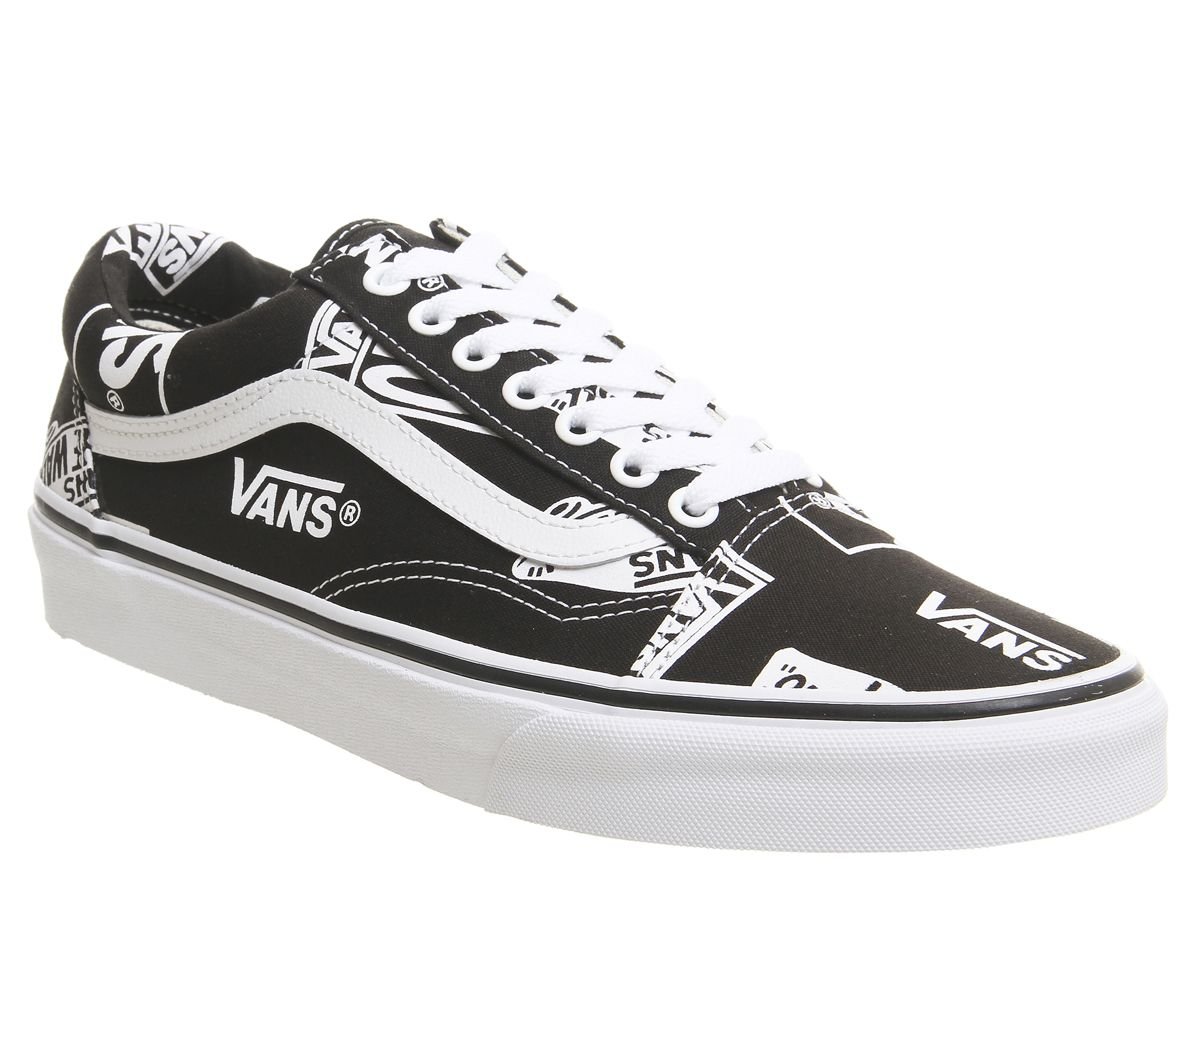 1308d511c0420 Vans Old Skool Trainers Black True White Logo - Unisex Sports